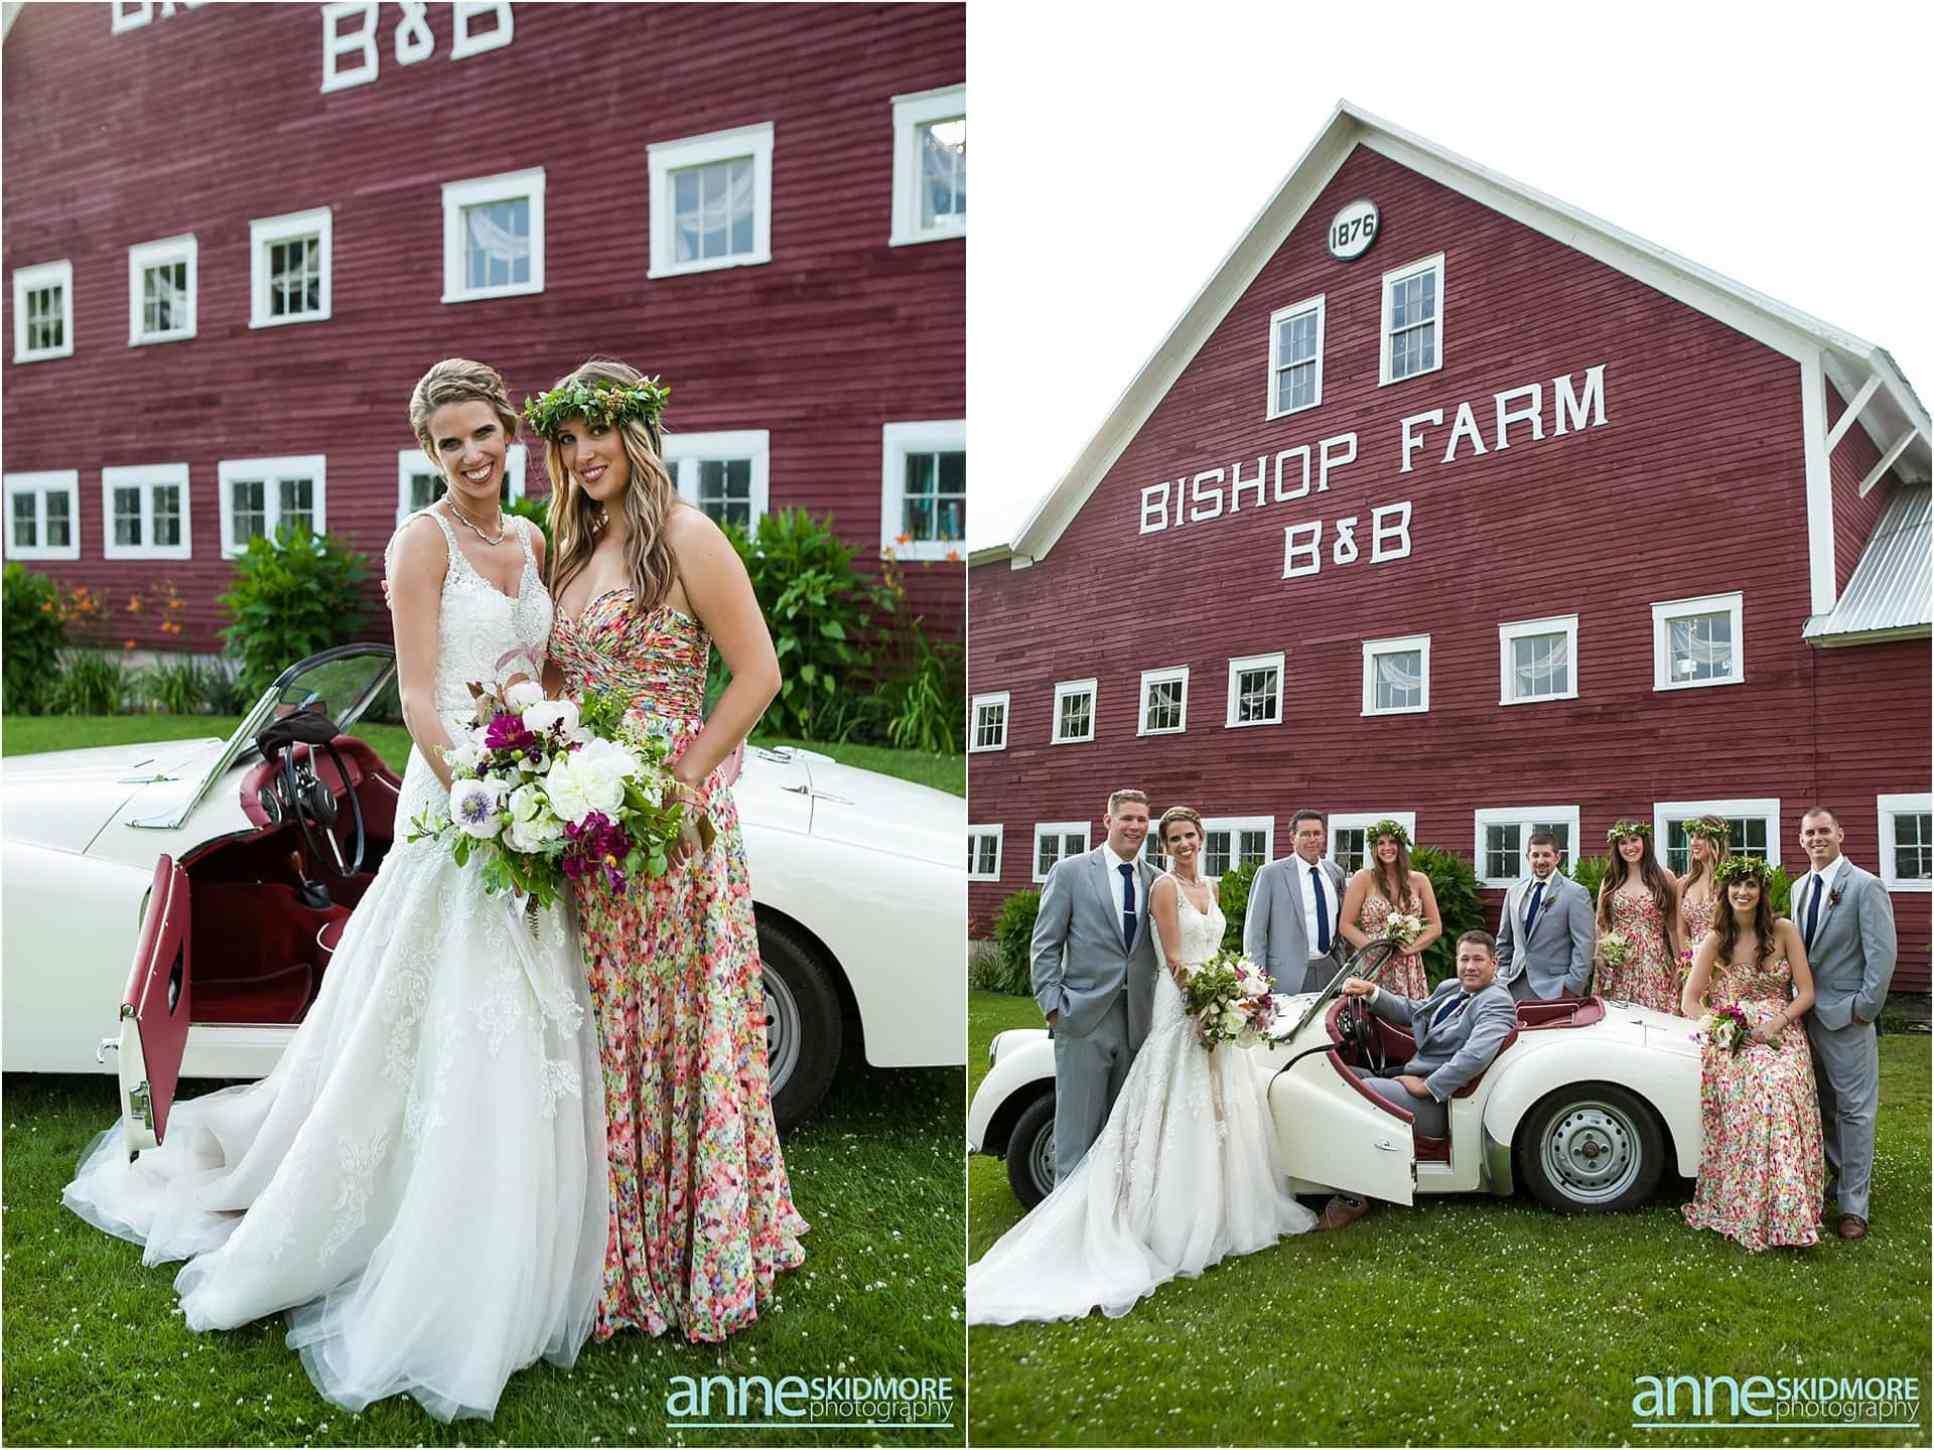 BISHOP_FARM_WEDDING__044